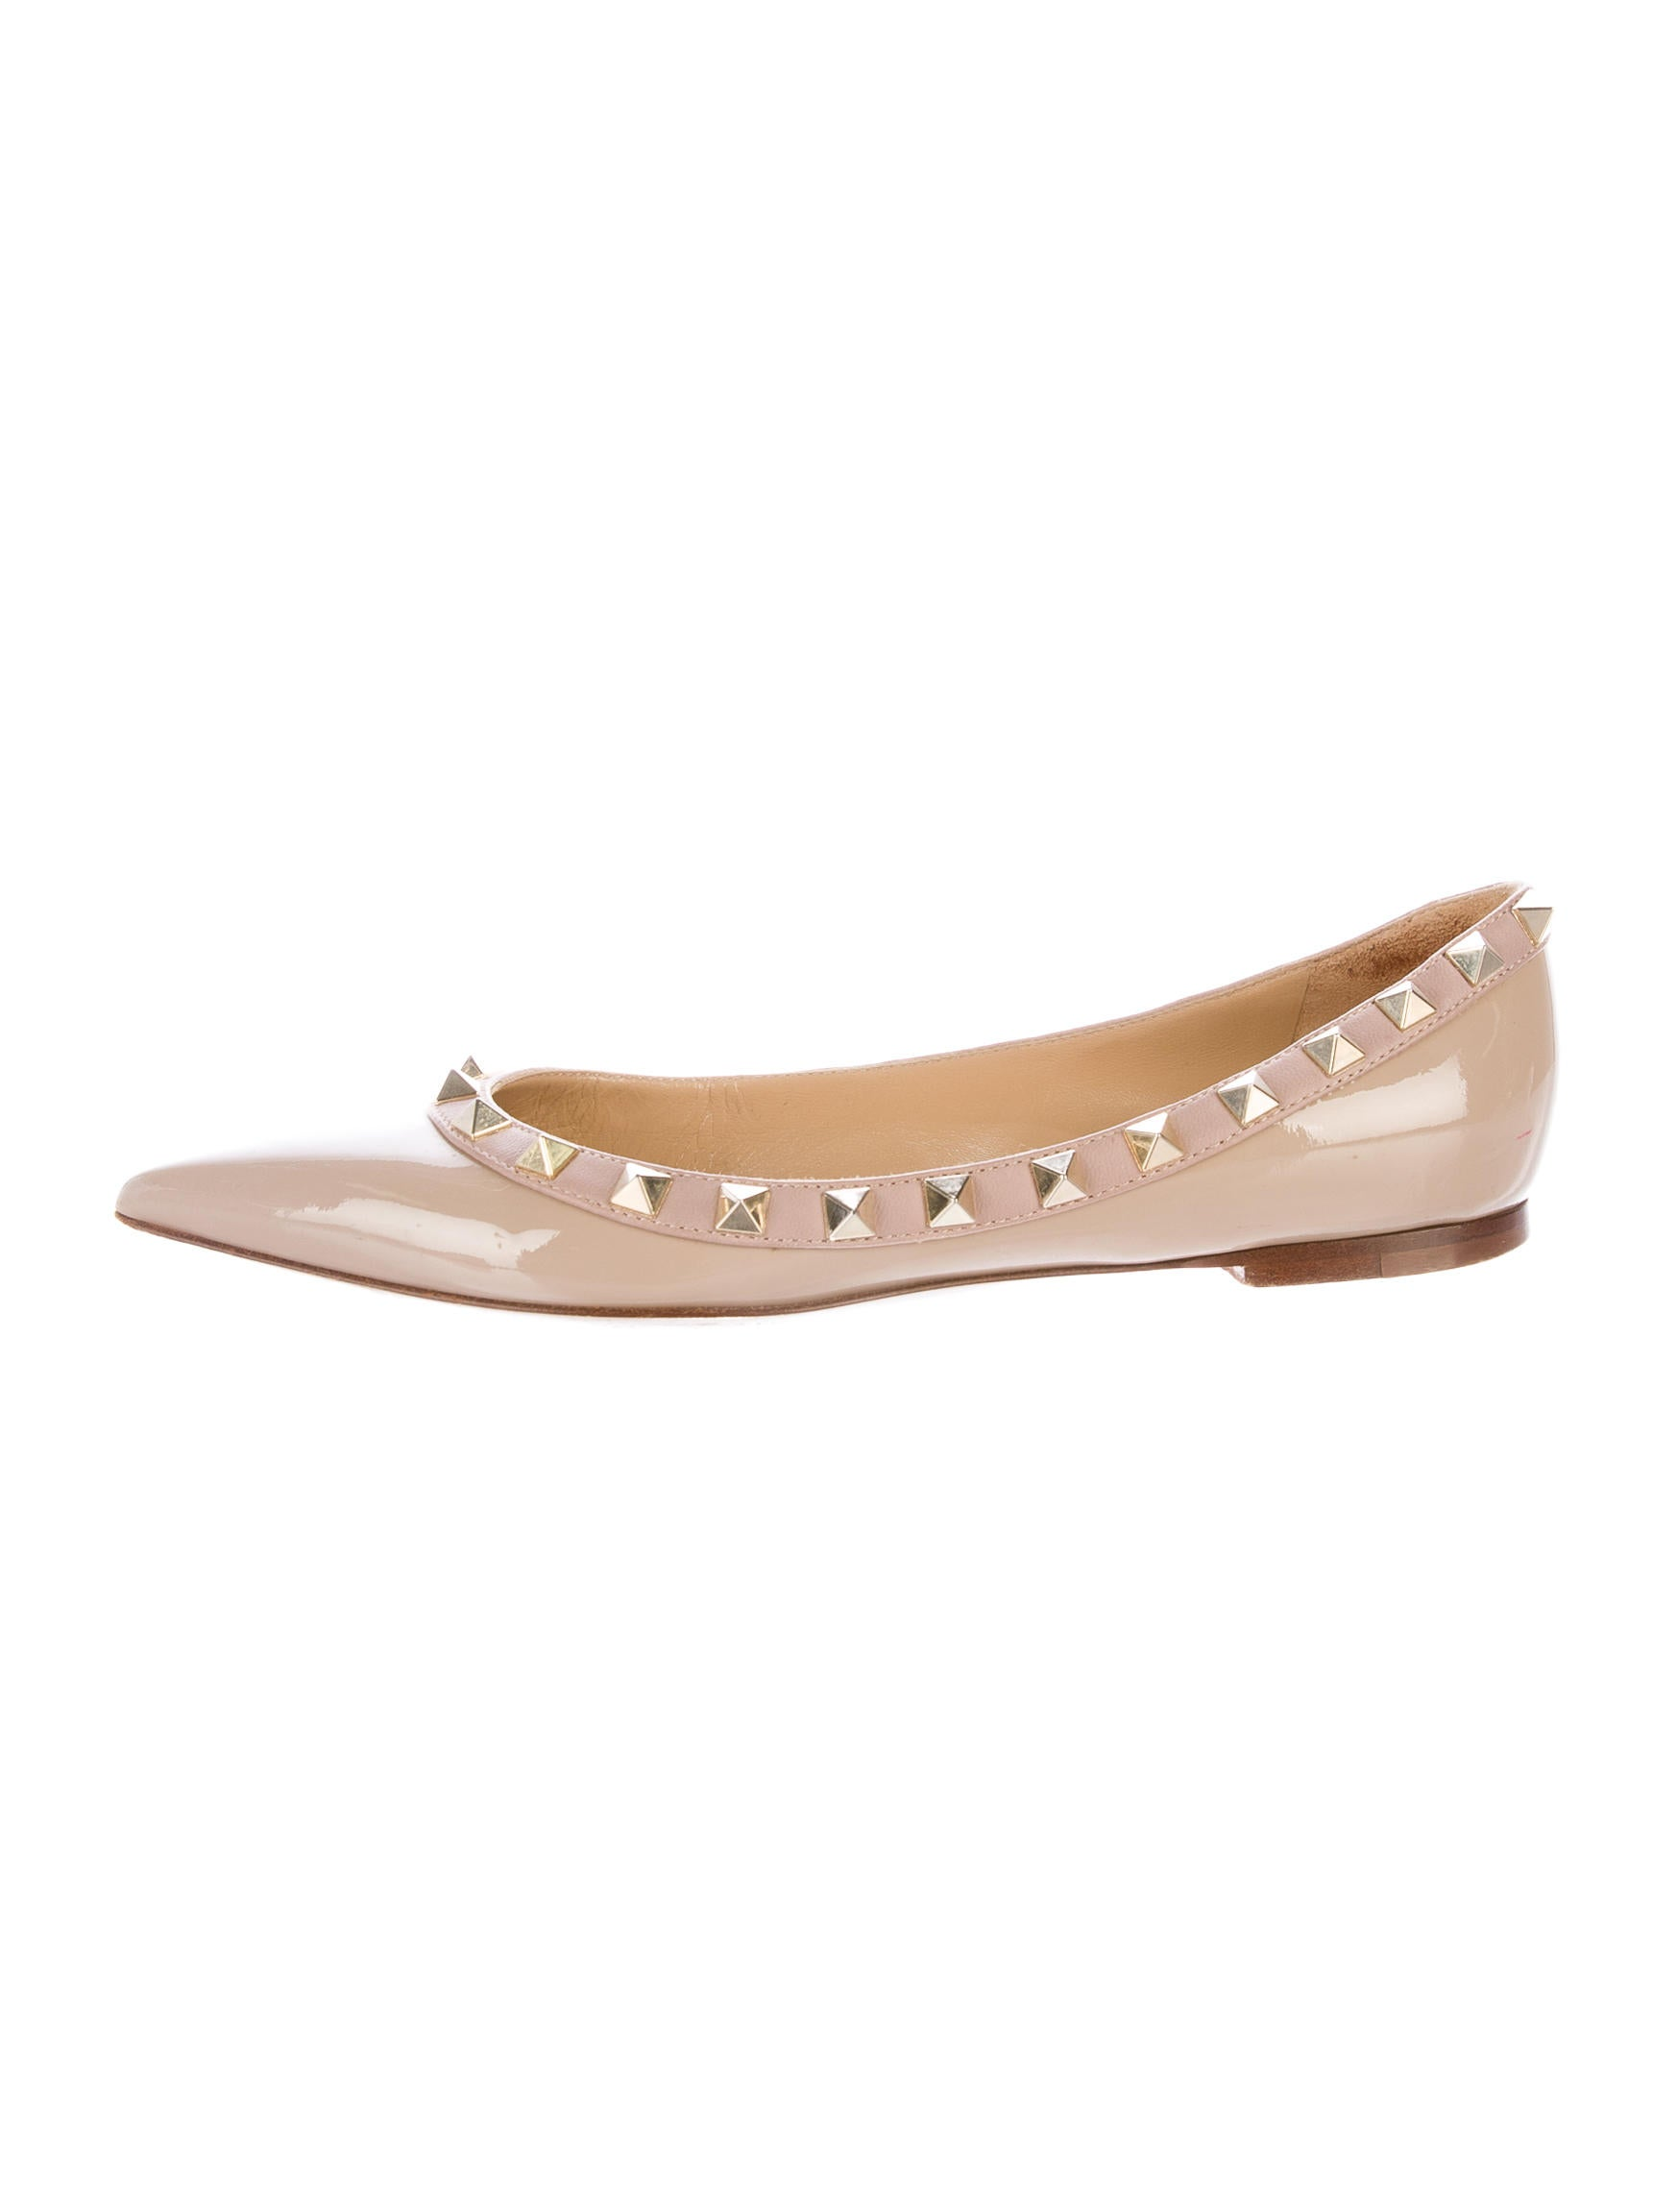 valentino rockstud patent leather flats shoes val60770